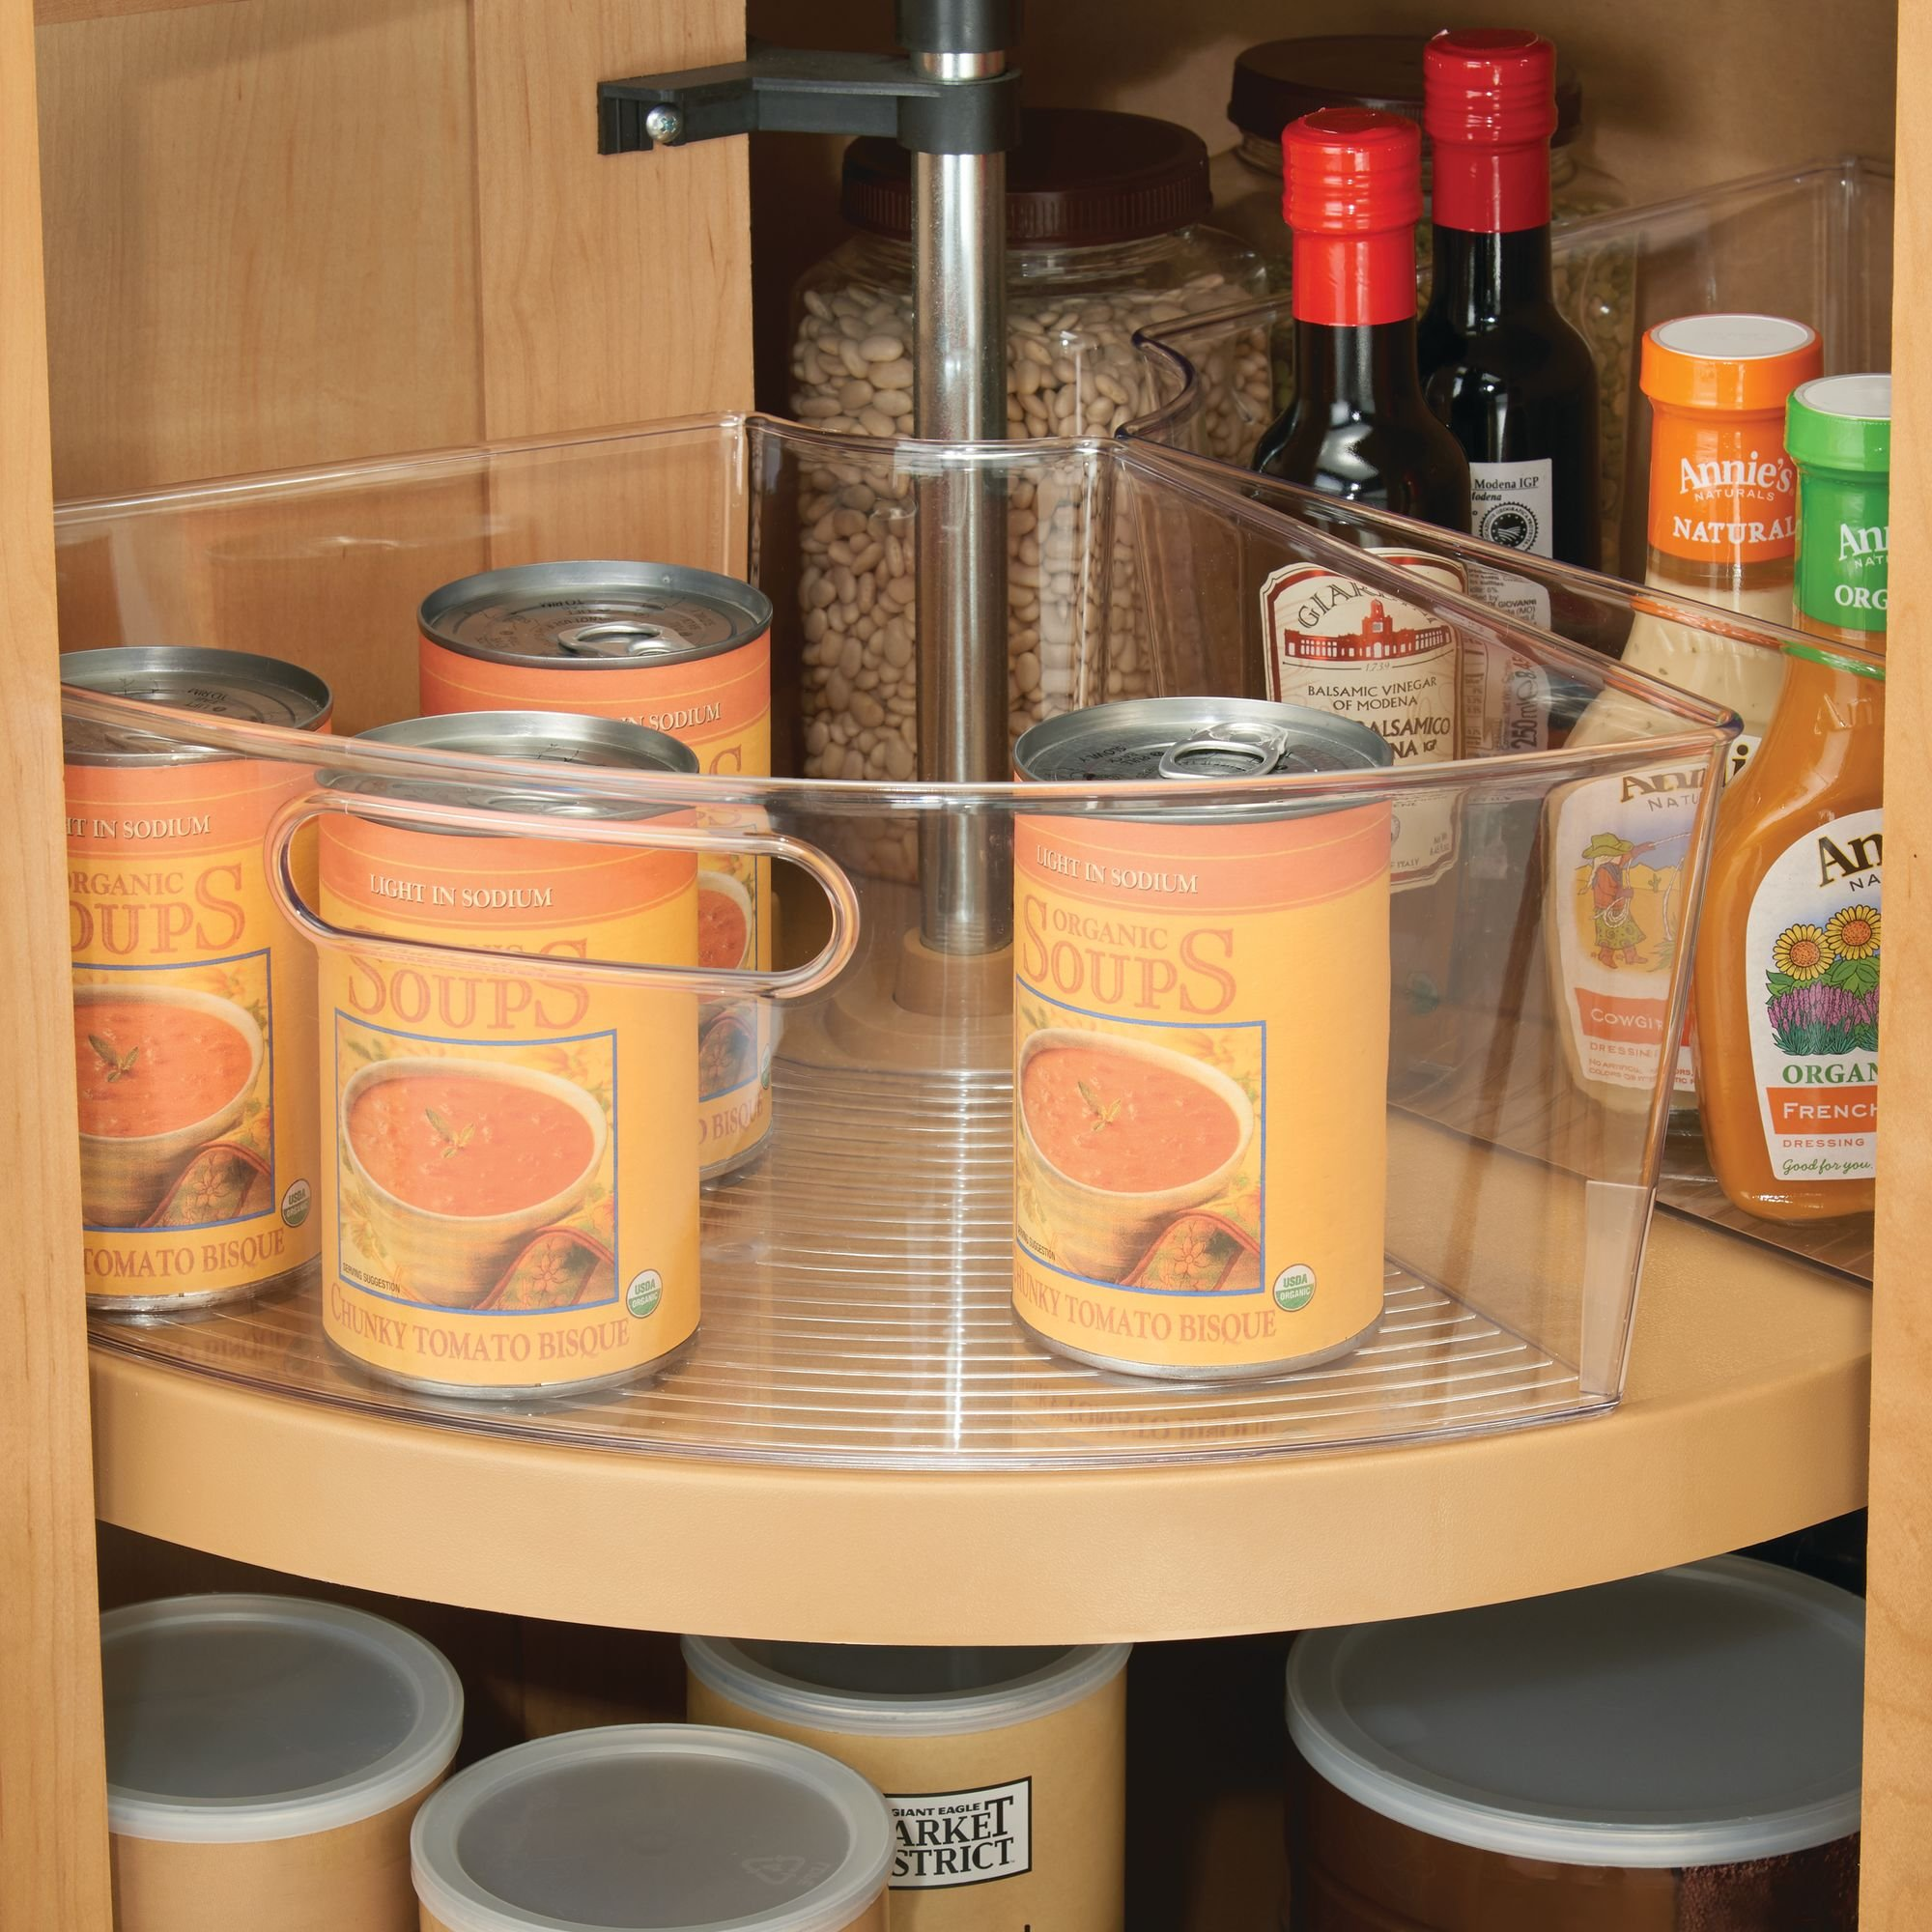 mDesign Kitchen Cabinet Plastic Lazy Susan Storage Organizer Bins with Front Handle - Large Pie-Shaped 1/4 Wedge, 6'' Deep Container - Food Safe, BPA Free - Set of 4, Clear by mDesign (Image #4)